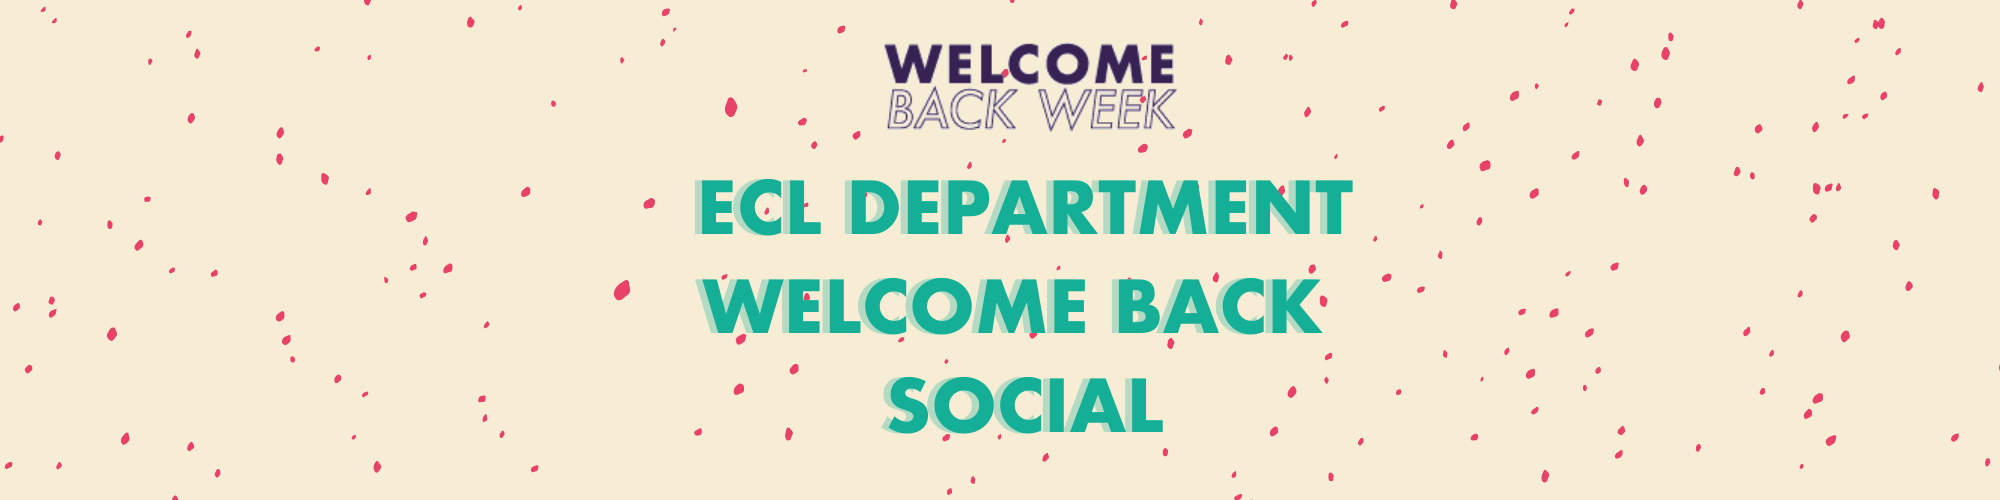 ECL Department Welcome Back Social